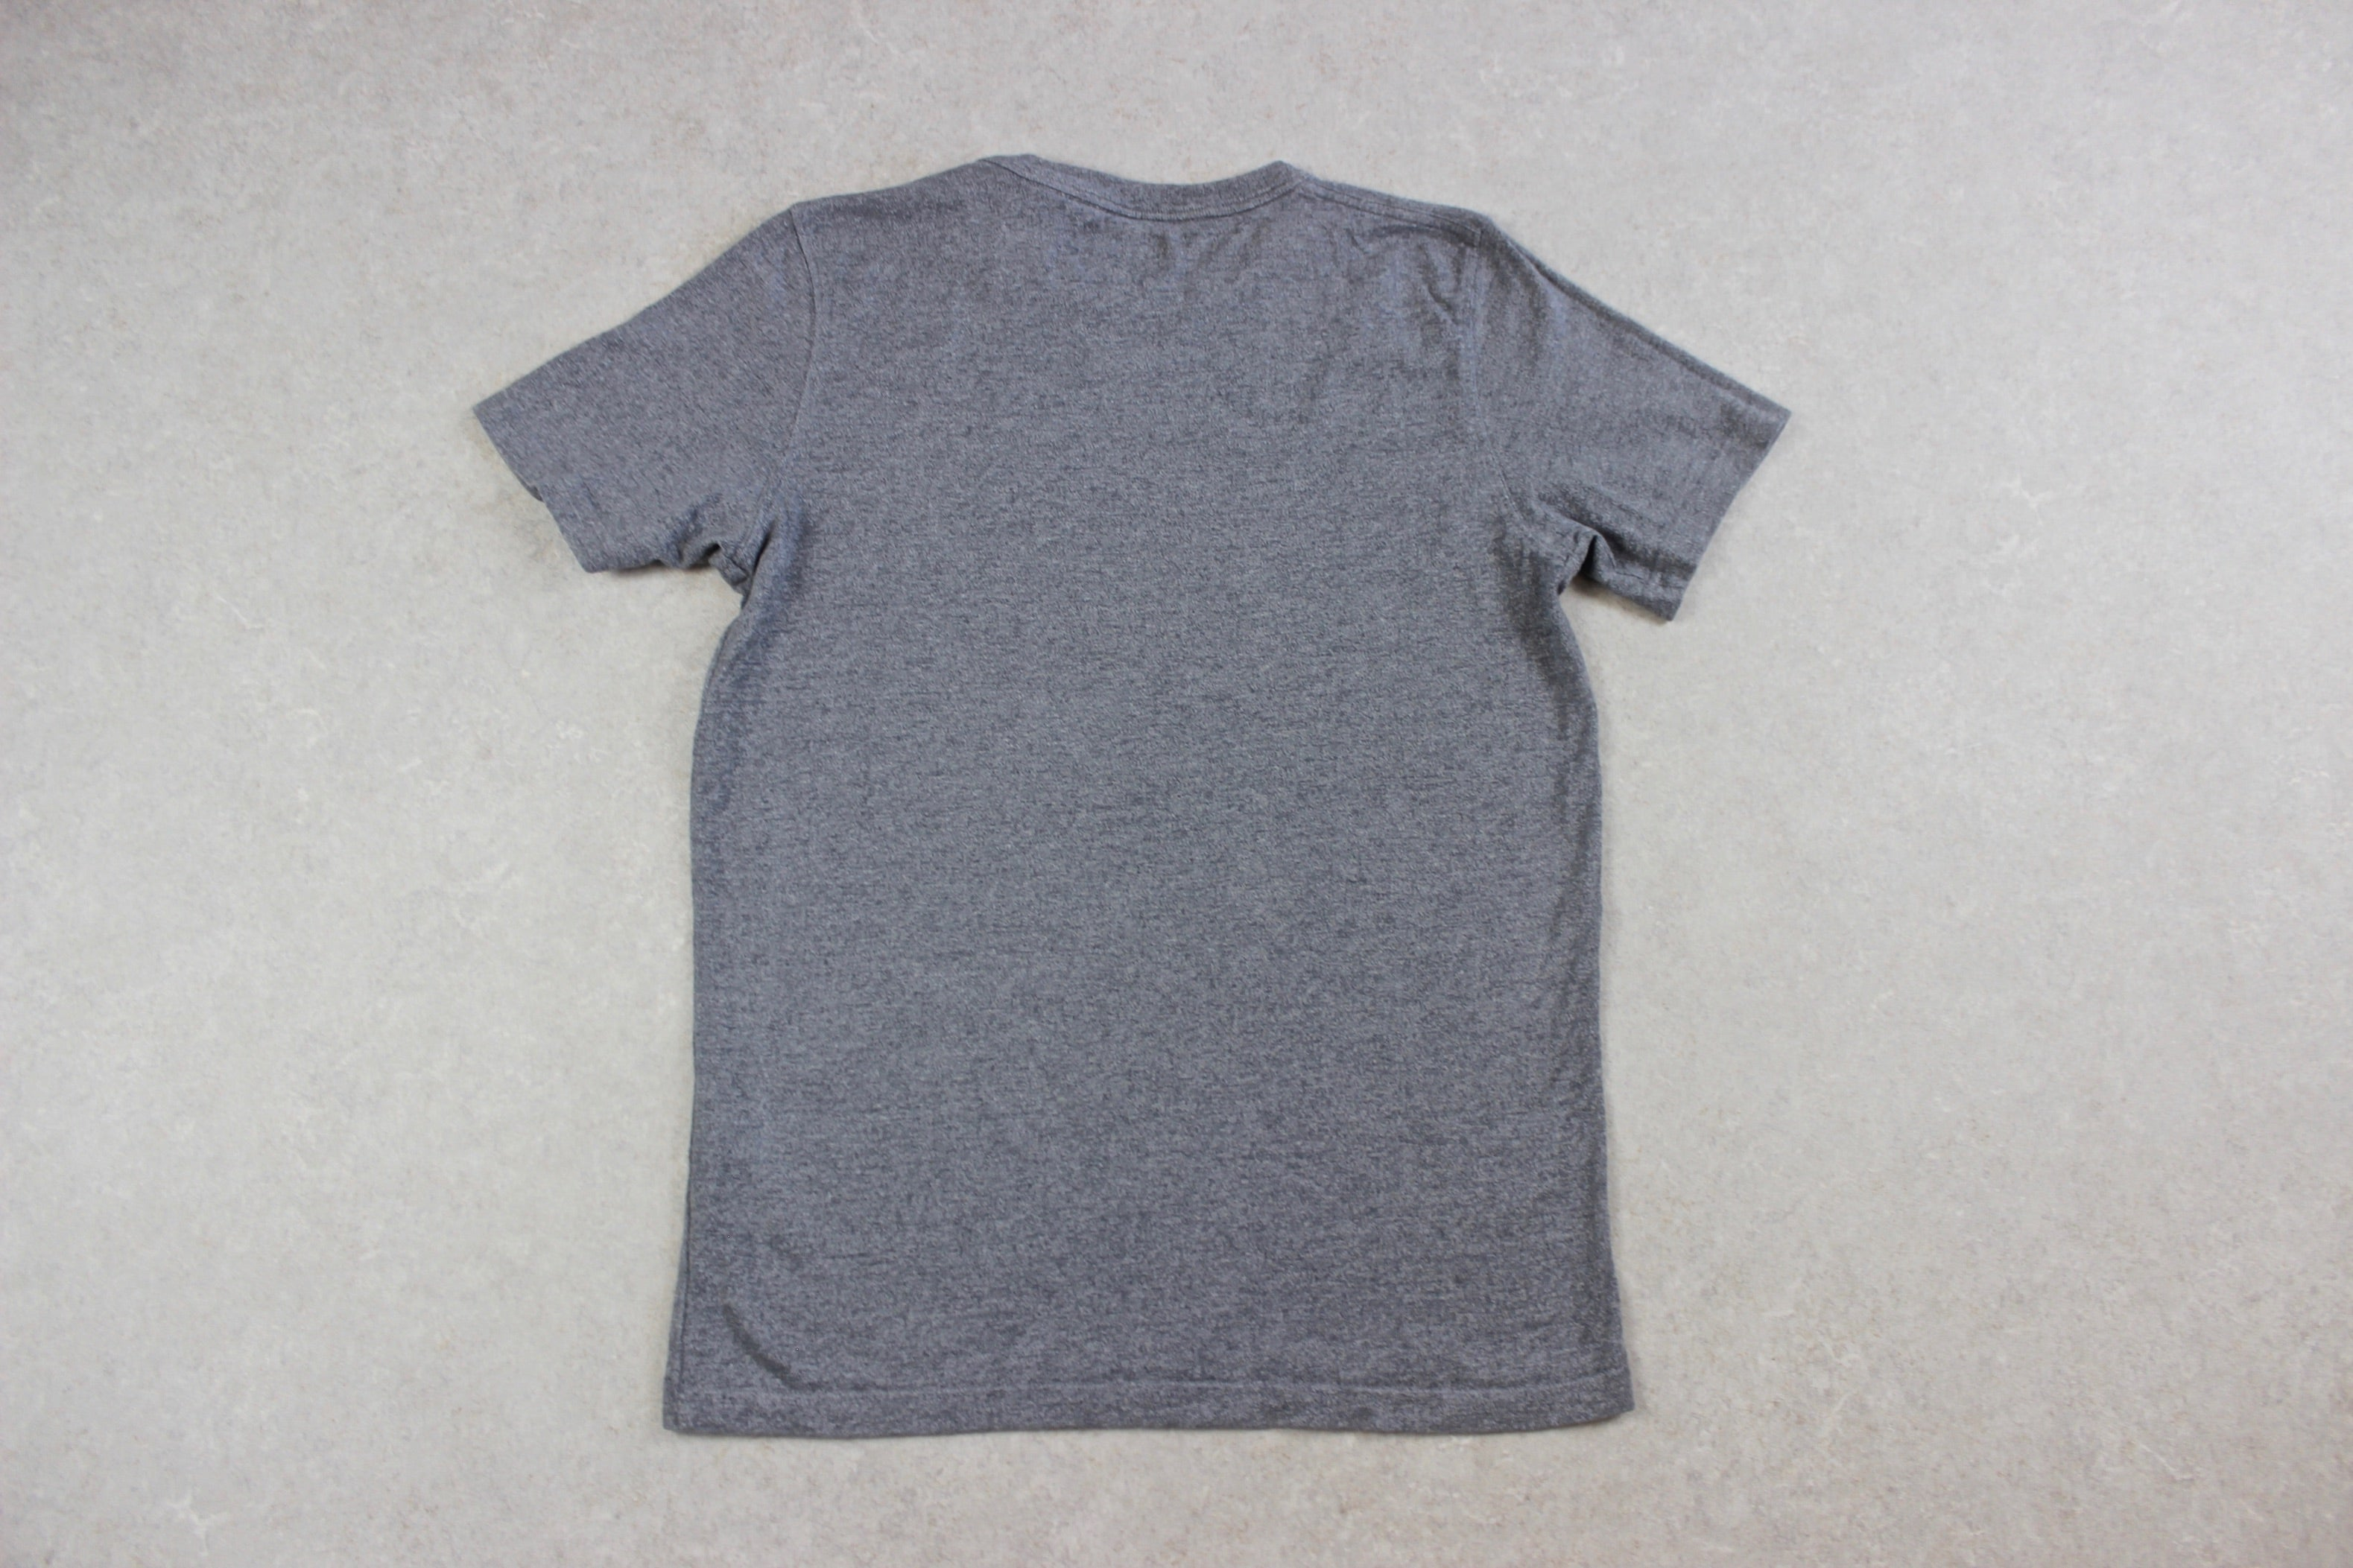 Norse Projects - T Shirt - Grey - Small